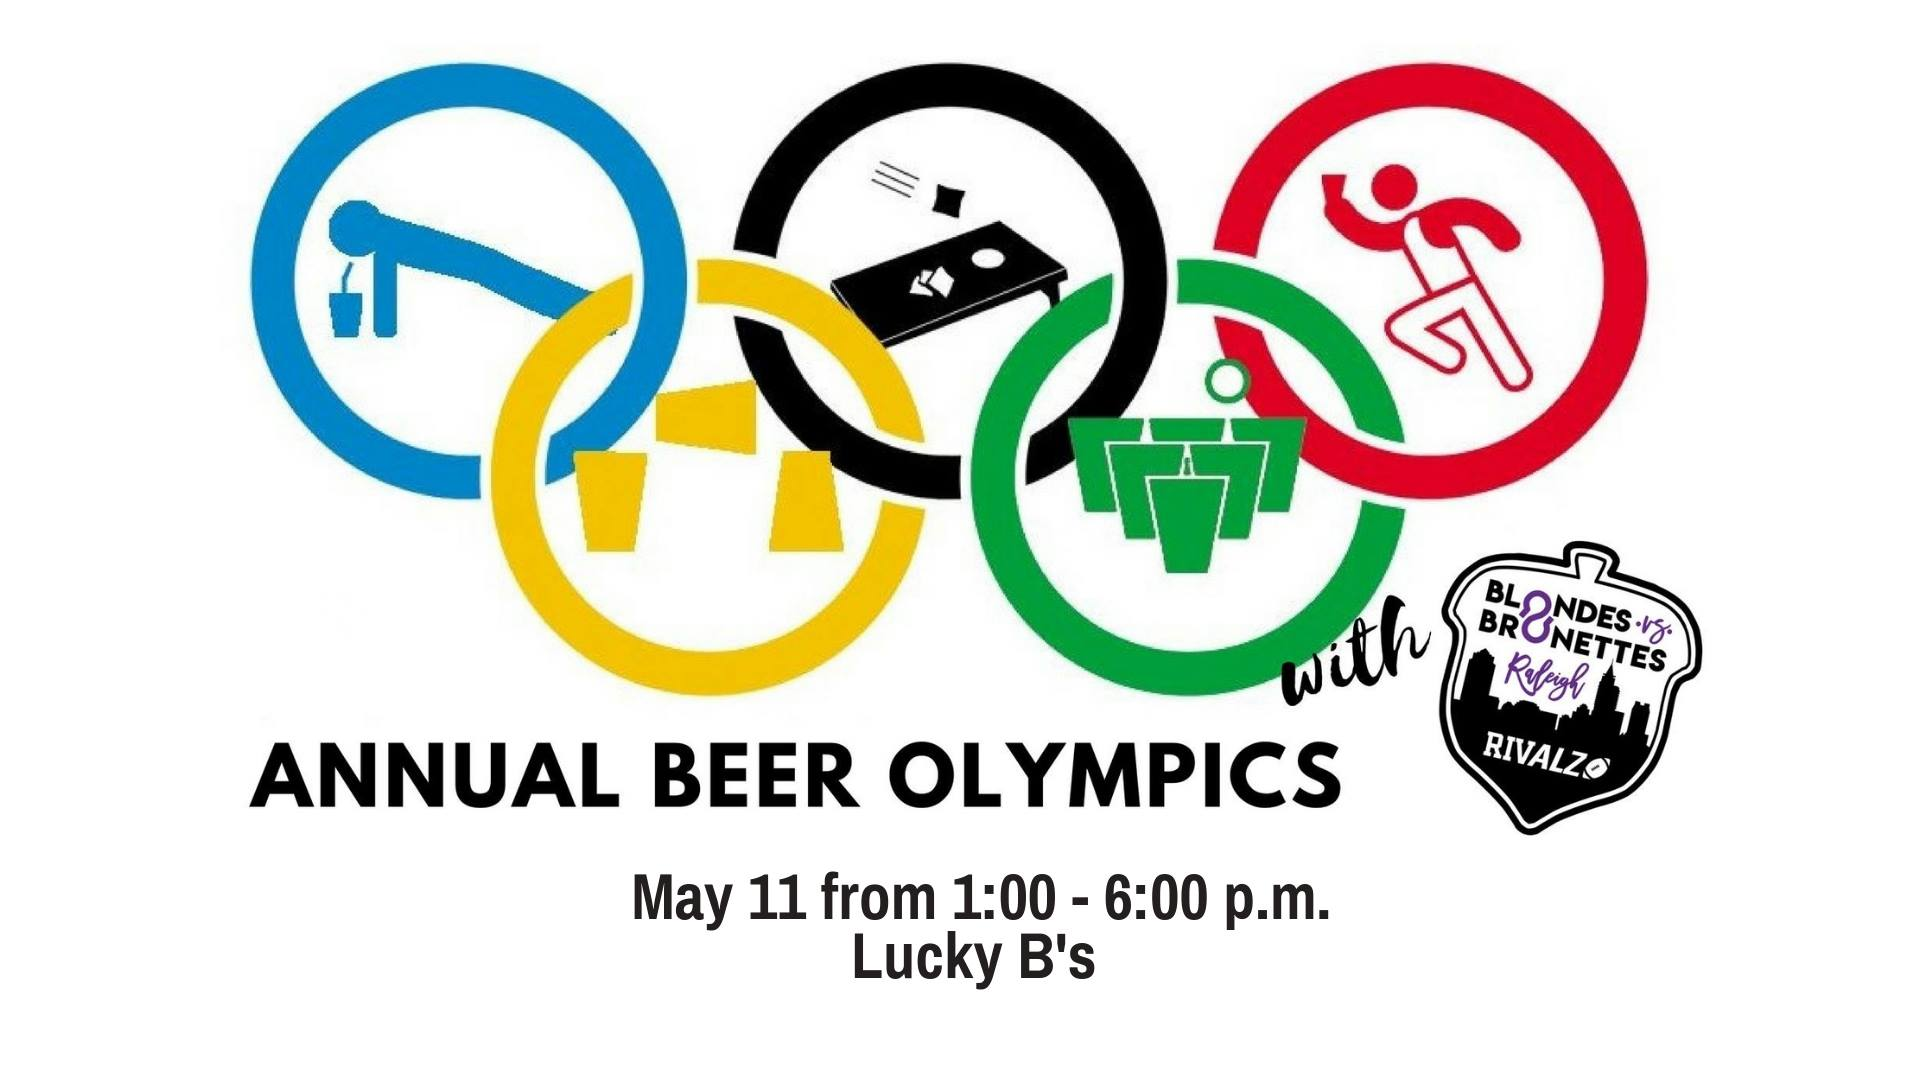 Blondes vs Brunettes Beer Olympics at Lucky B's